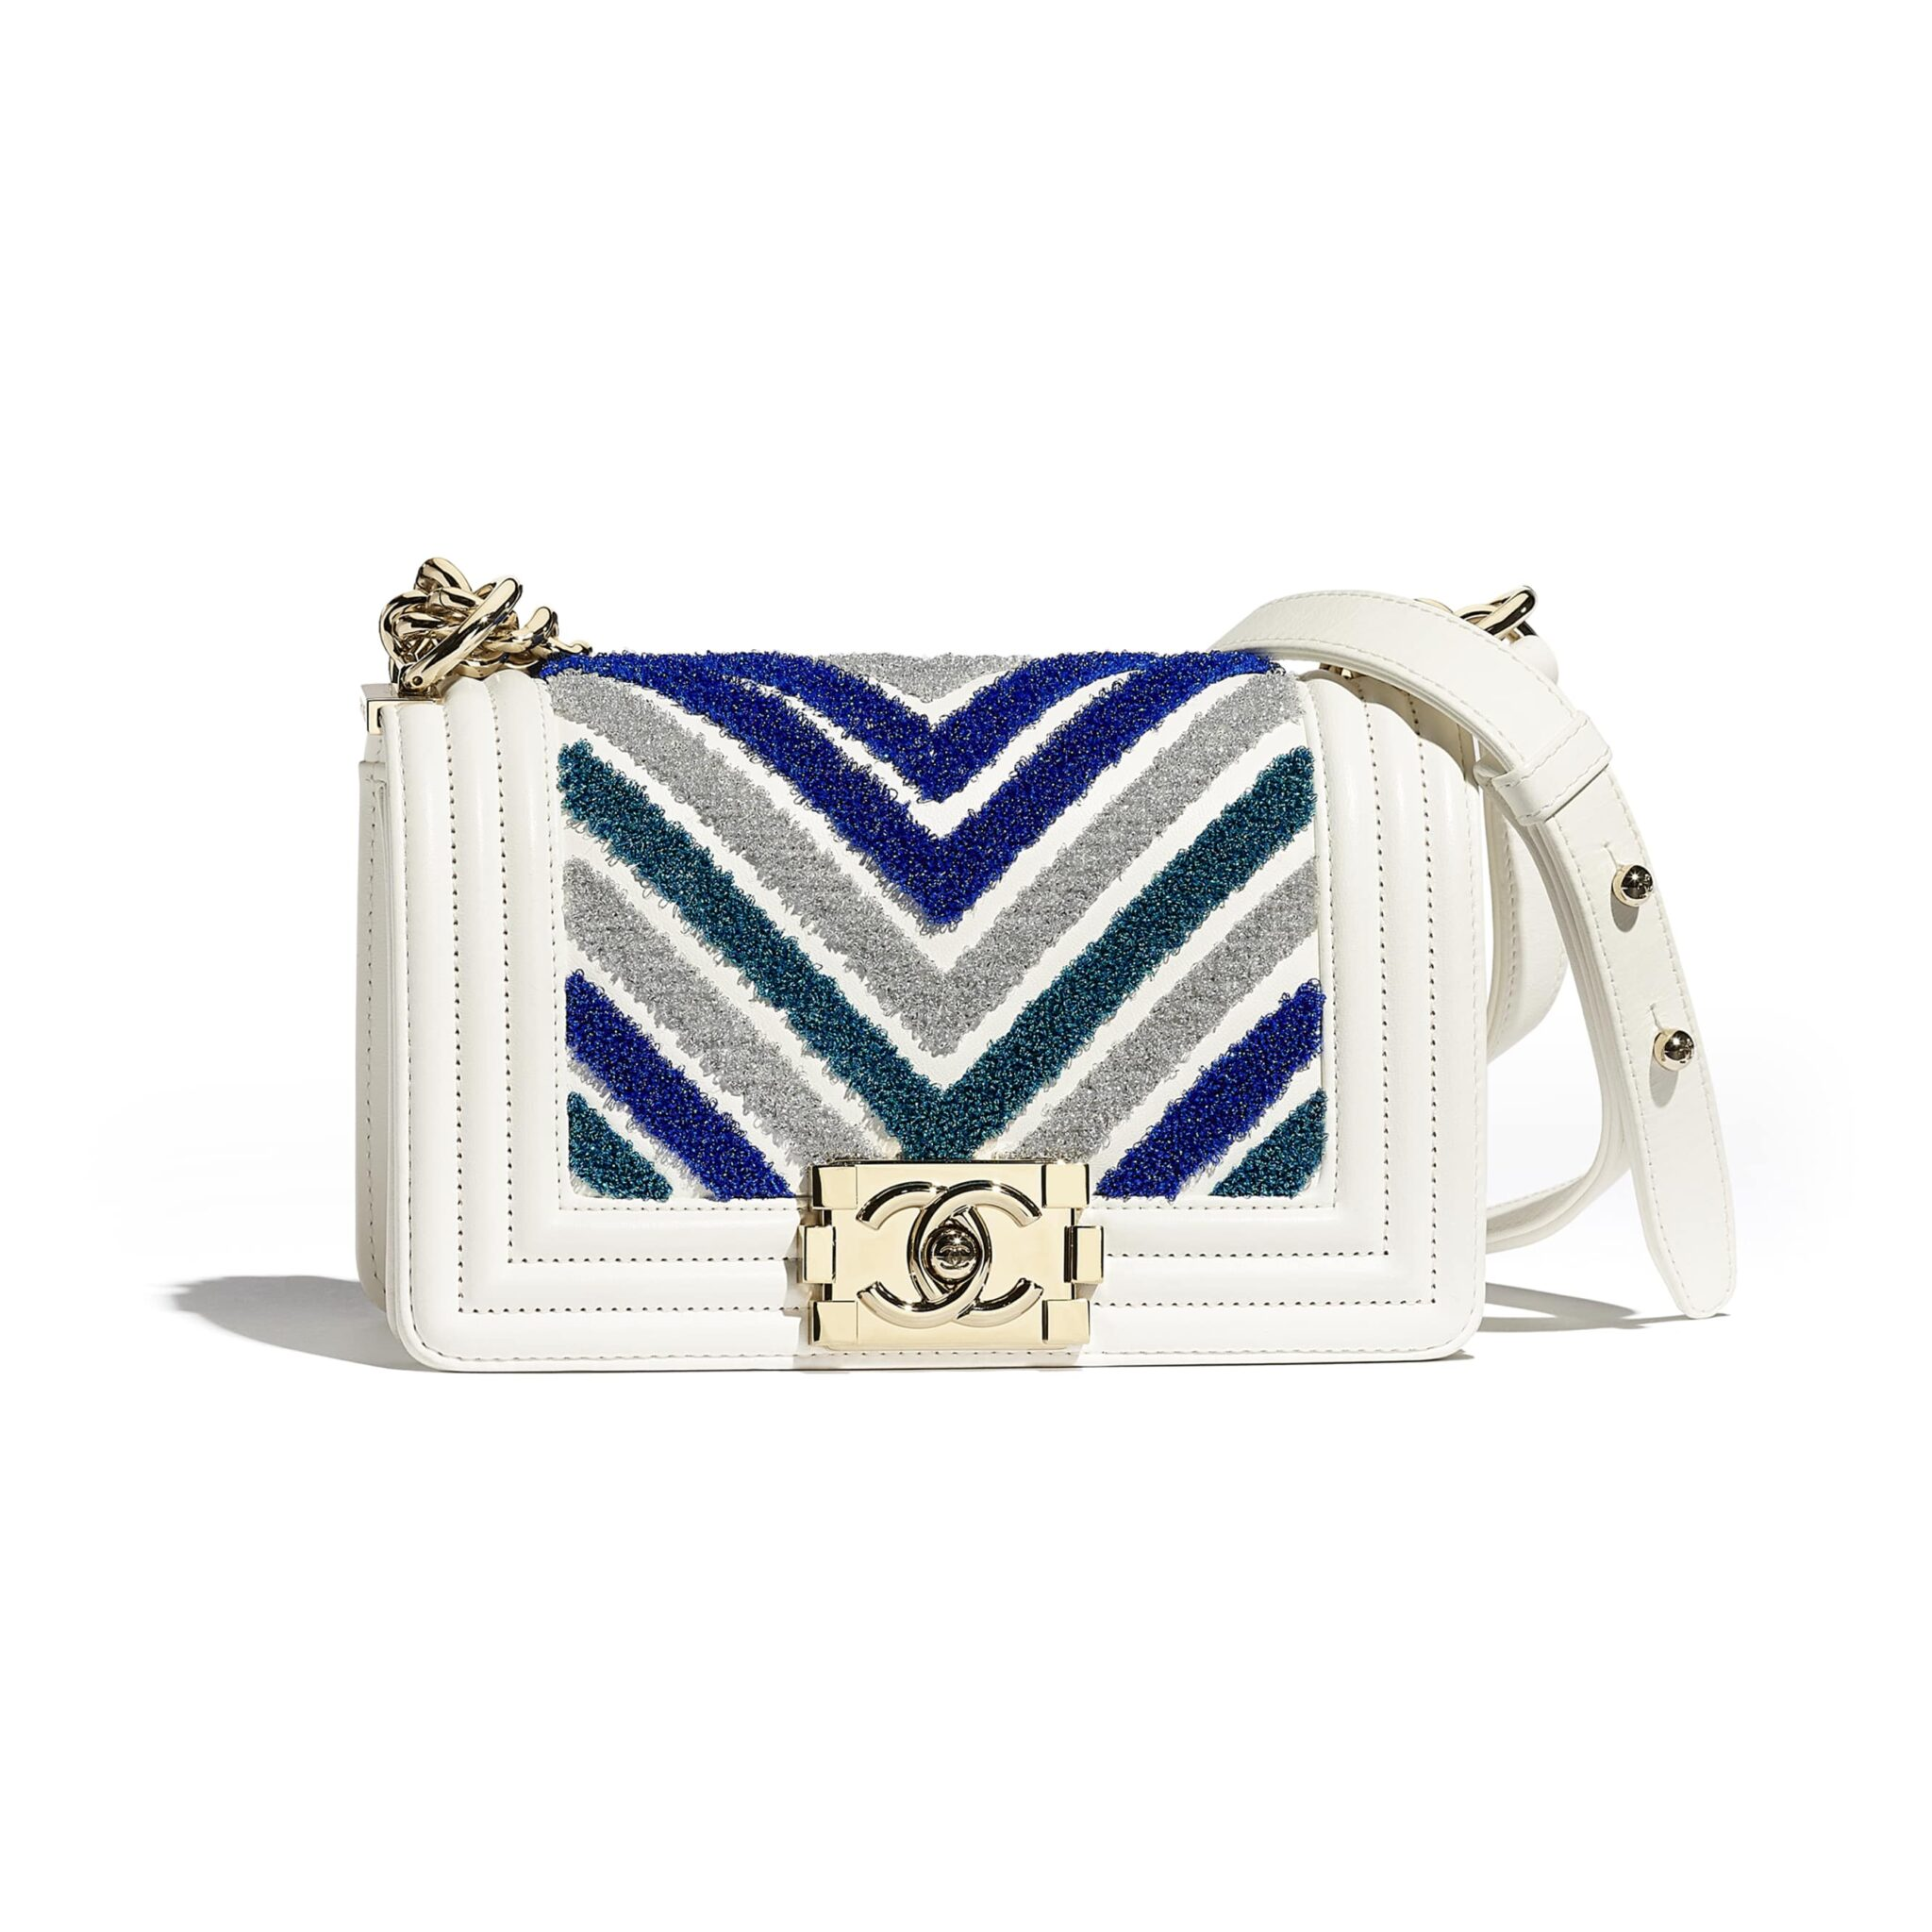 aea49083c8c7 Chanel Blue/White Embroidered Calfskin/Lurex Boy Chanel Small Flap Bag